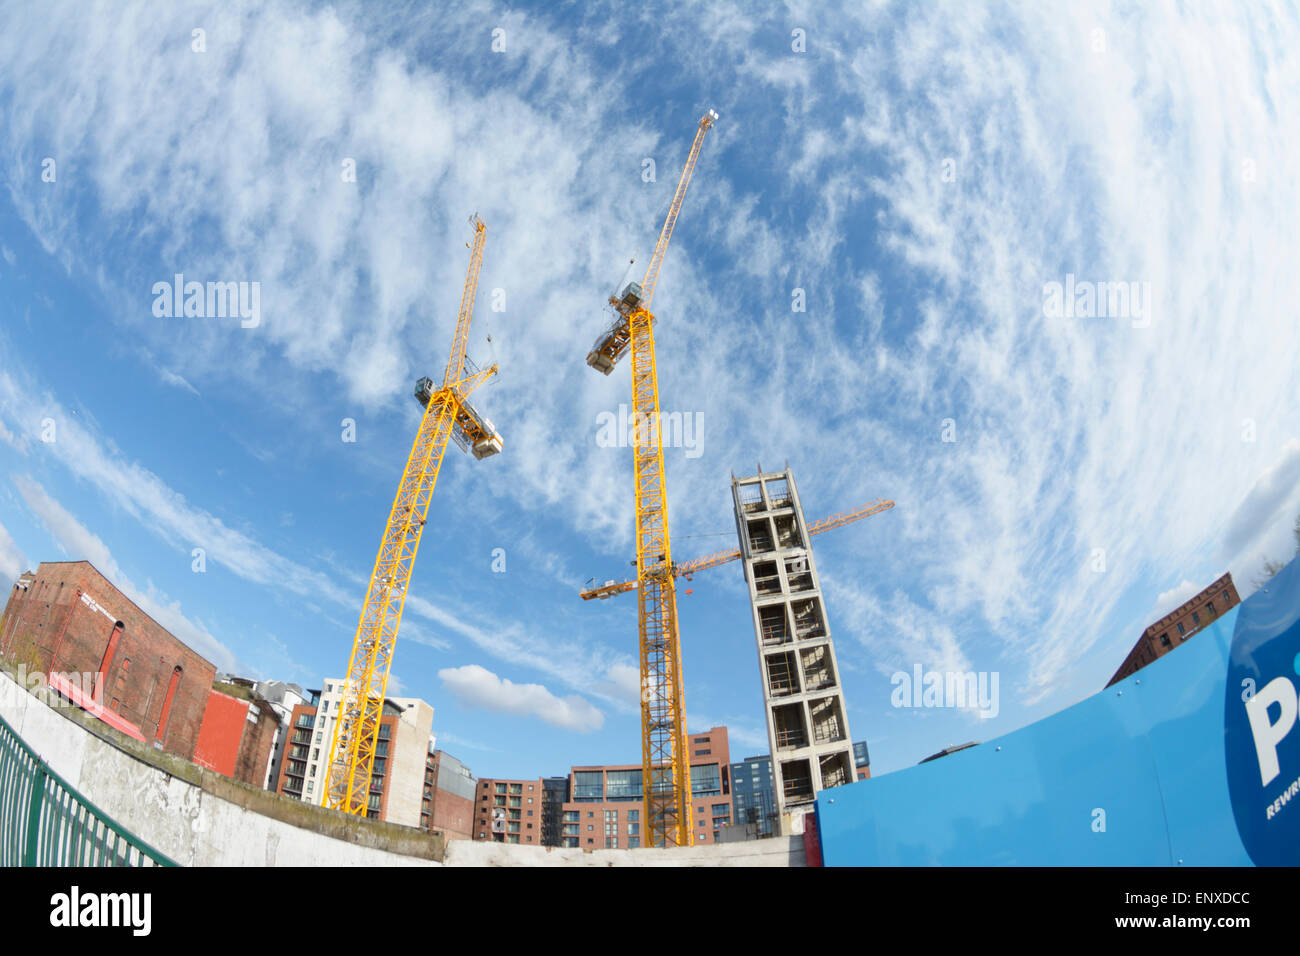 Yellow tower cranes against a blue sky with broken cloud formation - Stock Image